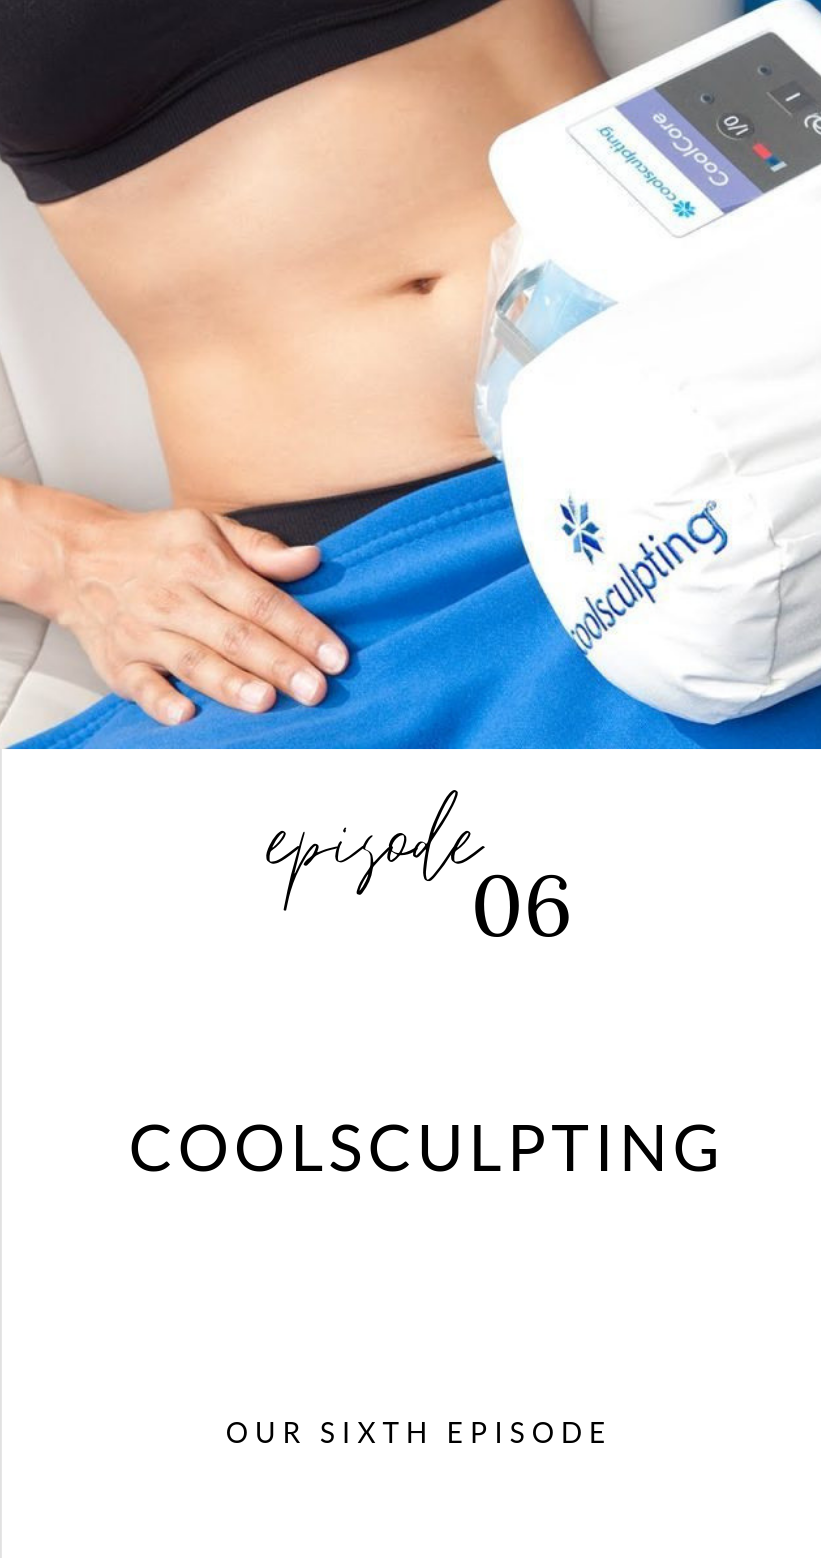 coolsculpting and cooltone in grand rapids urban you